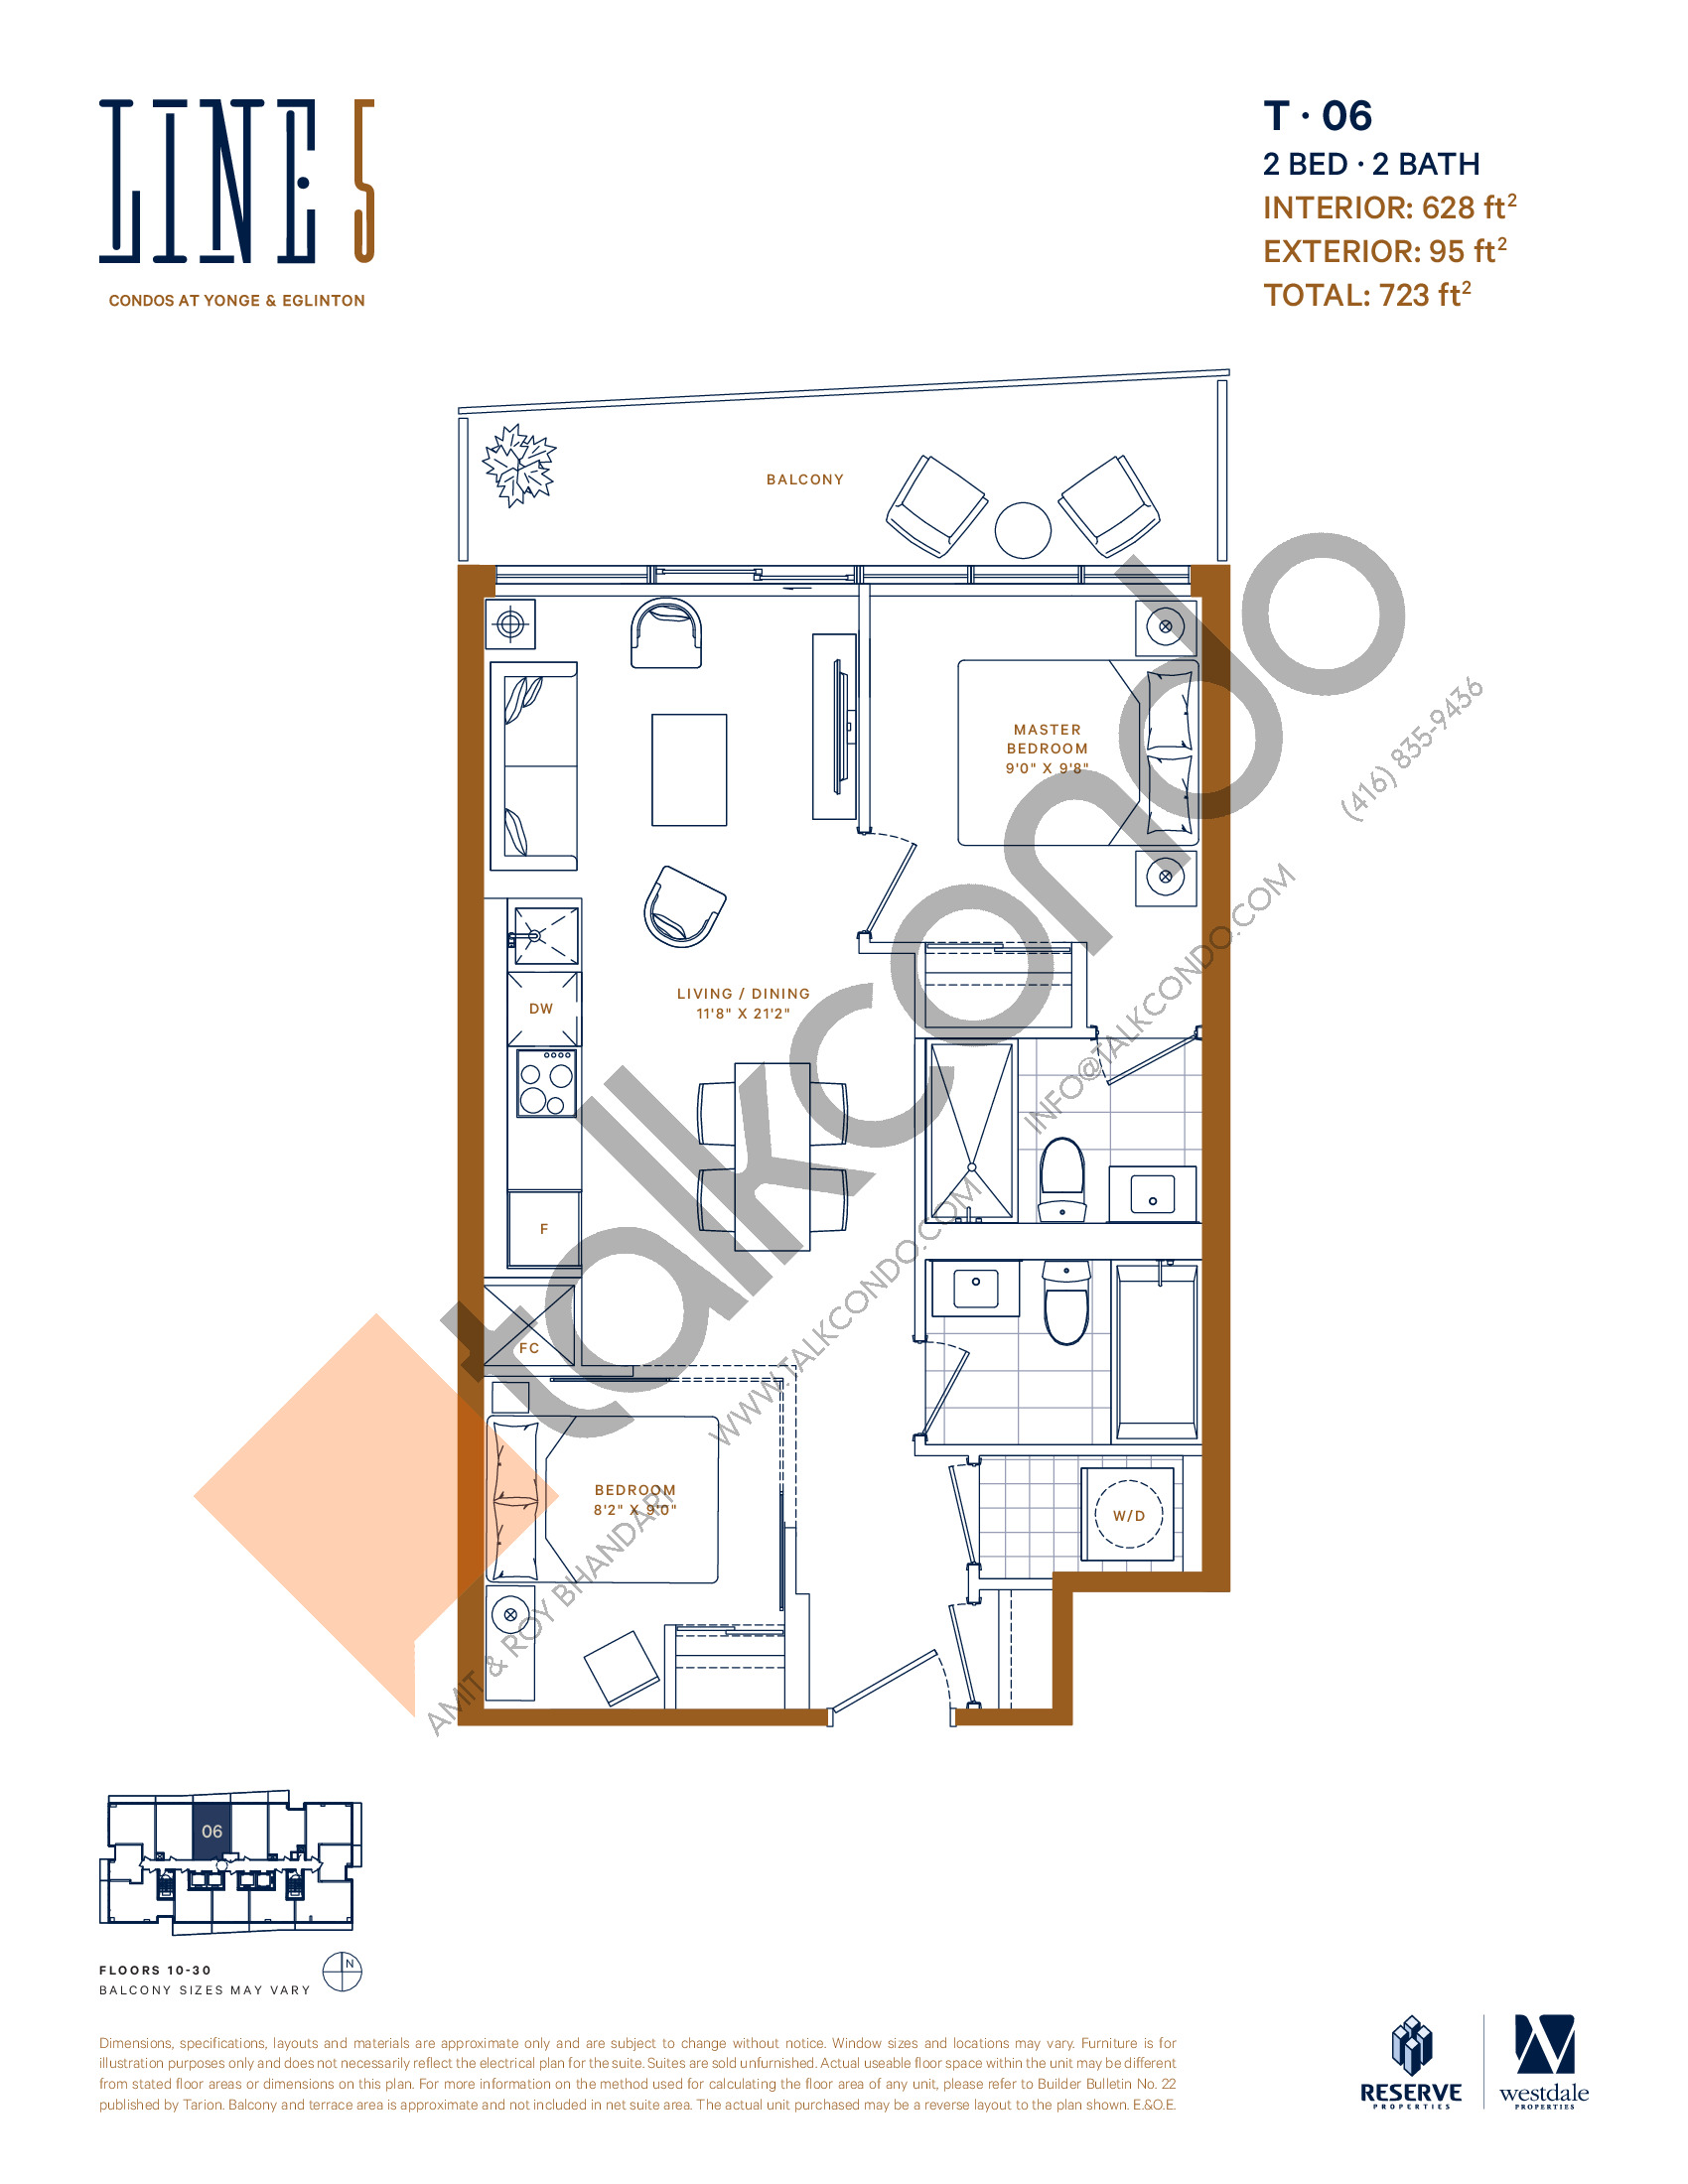 T-06 Floor Plan at Line 5 South Tower Condos - 628 sq.ft